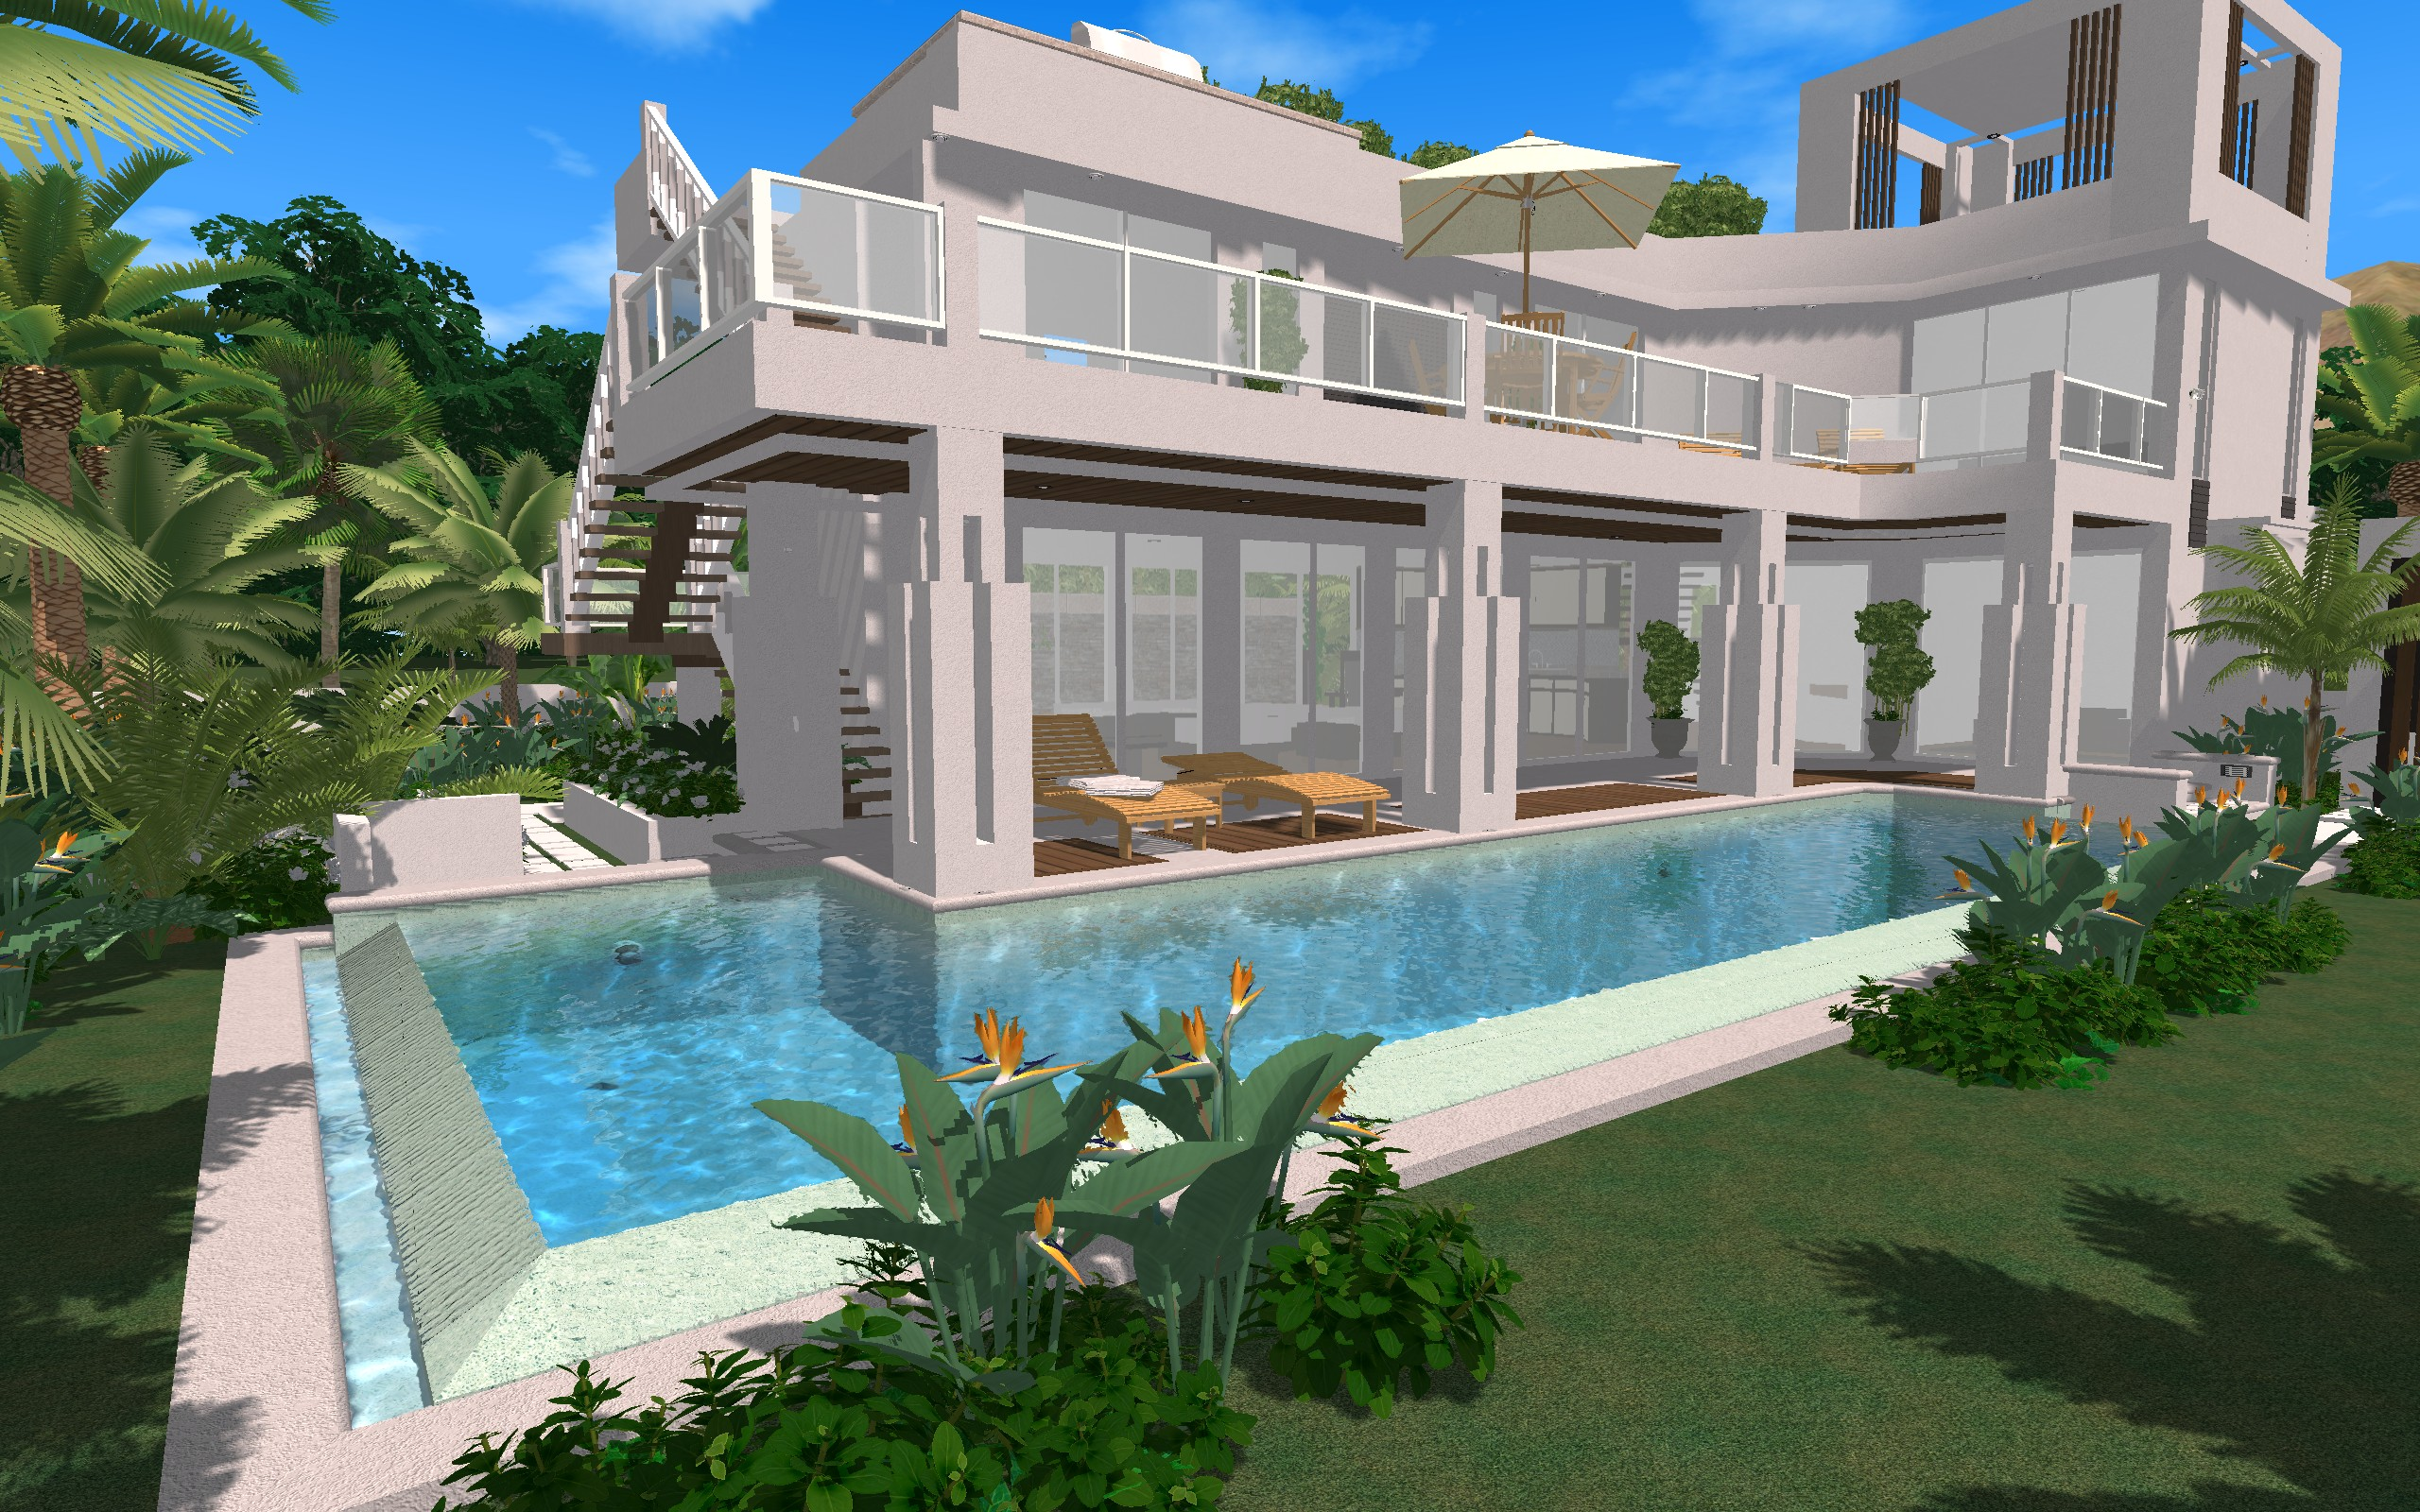 pool studio 3d swimming pool design software continues to amaze with